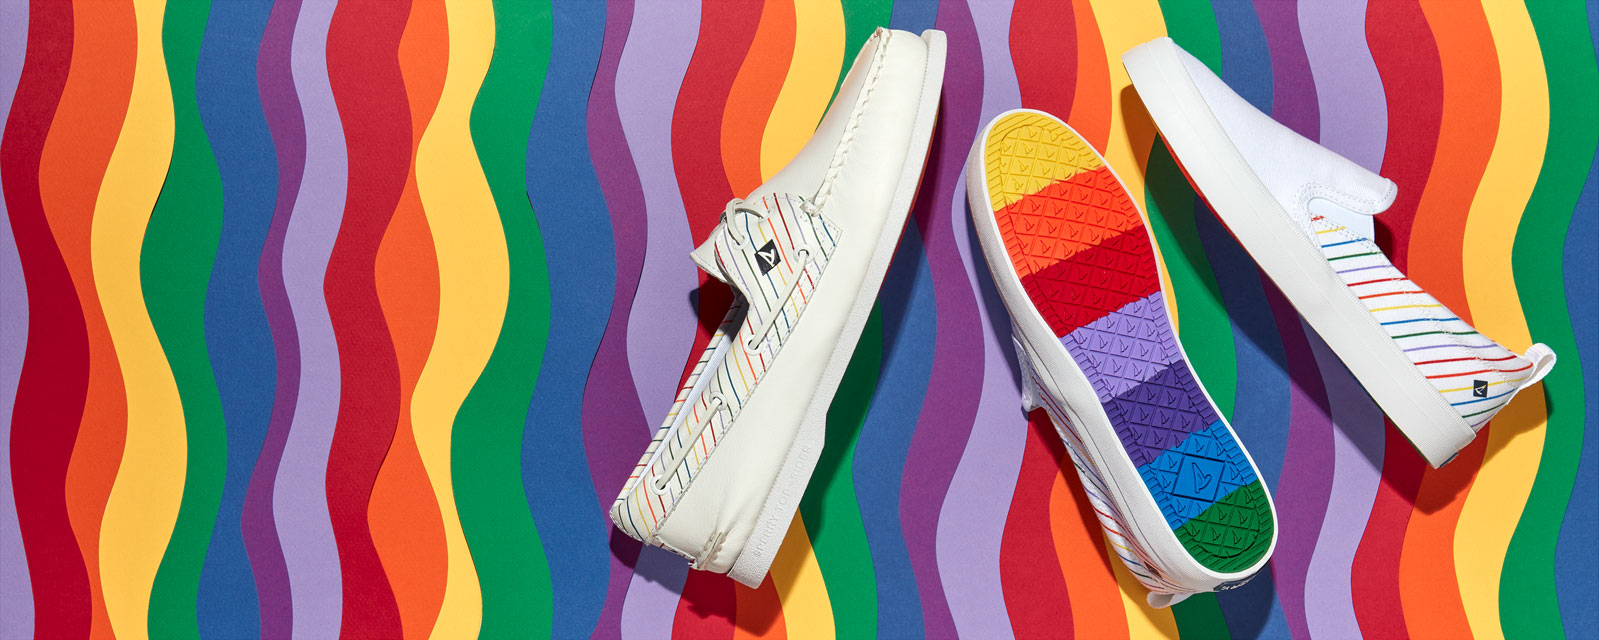 Rainbow colored pride Sperry shoes.